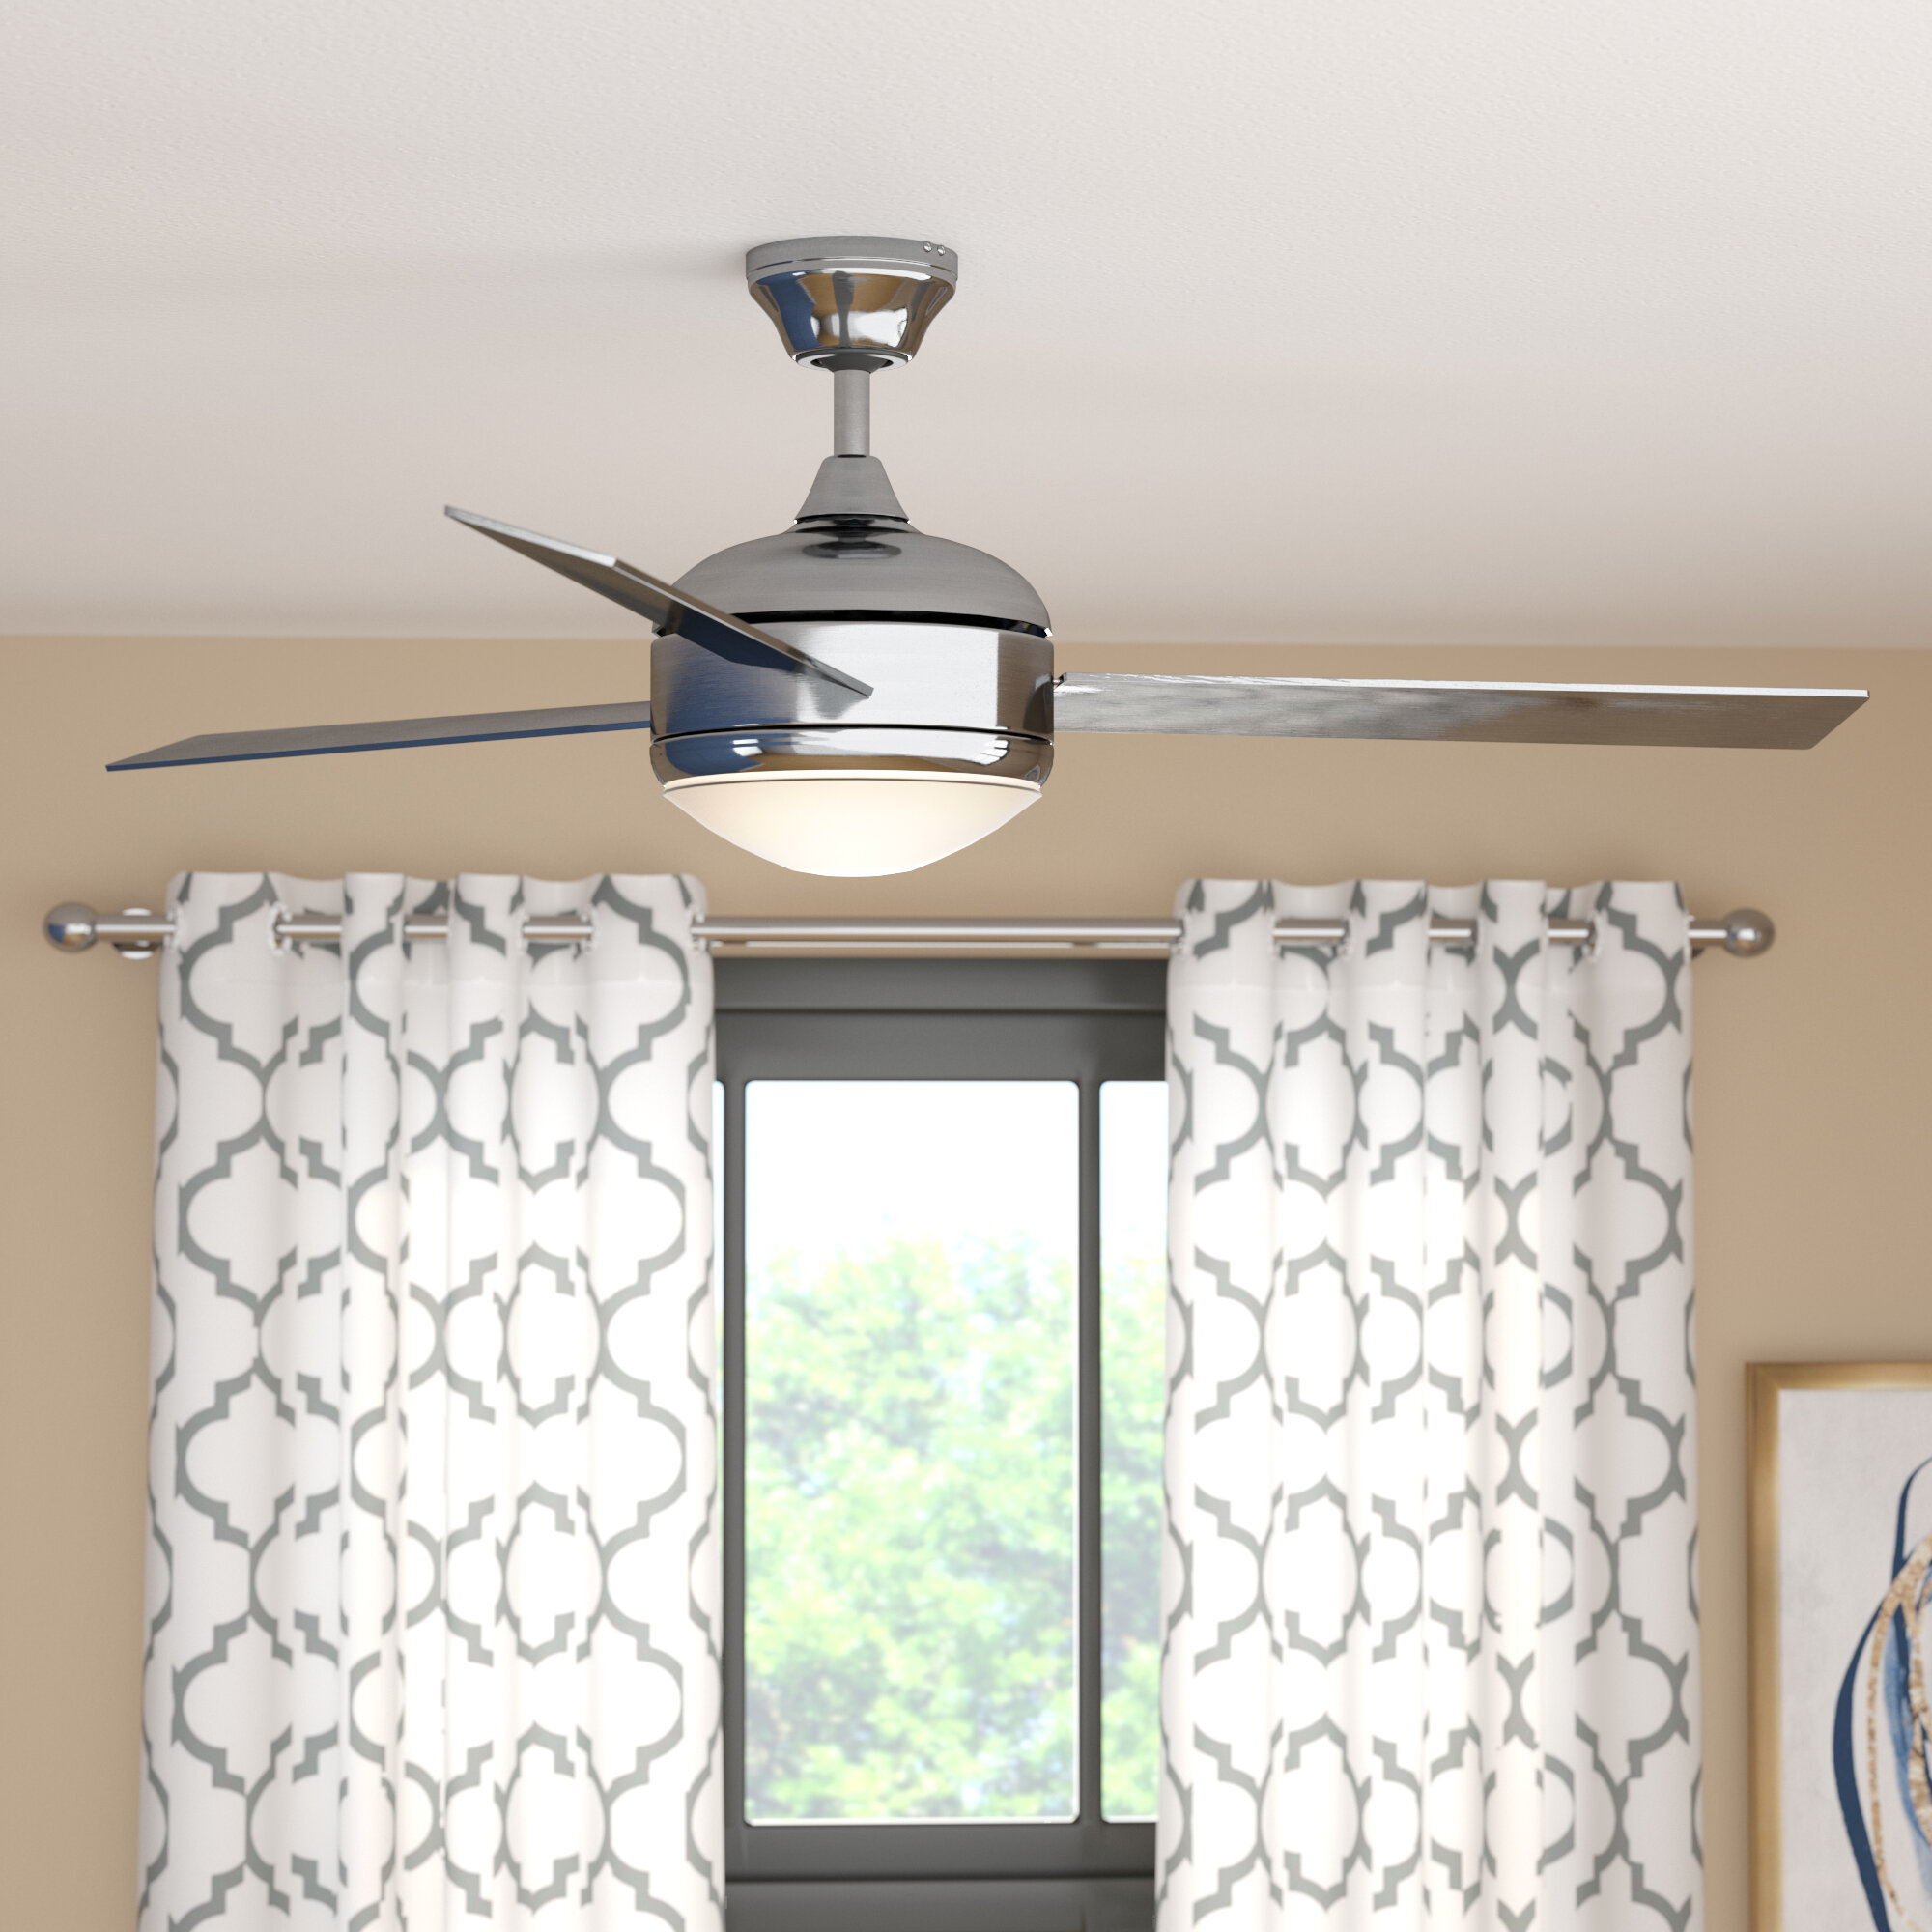 bathgroundspath of awesome fans ceiling fan browse size inch com all best emerson lovely ceilings light w full photos solar